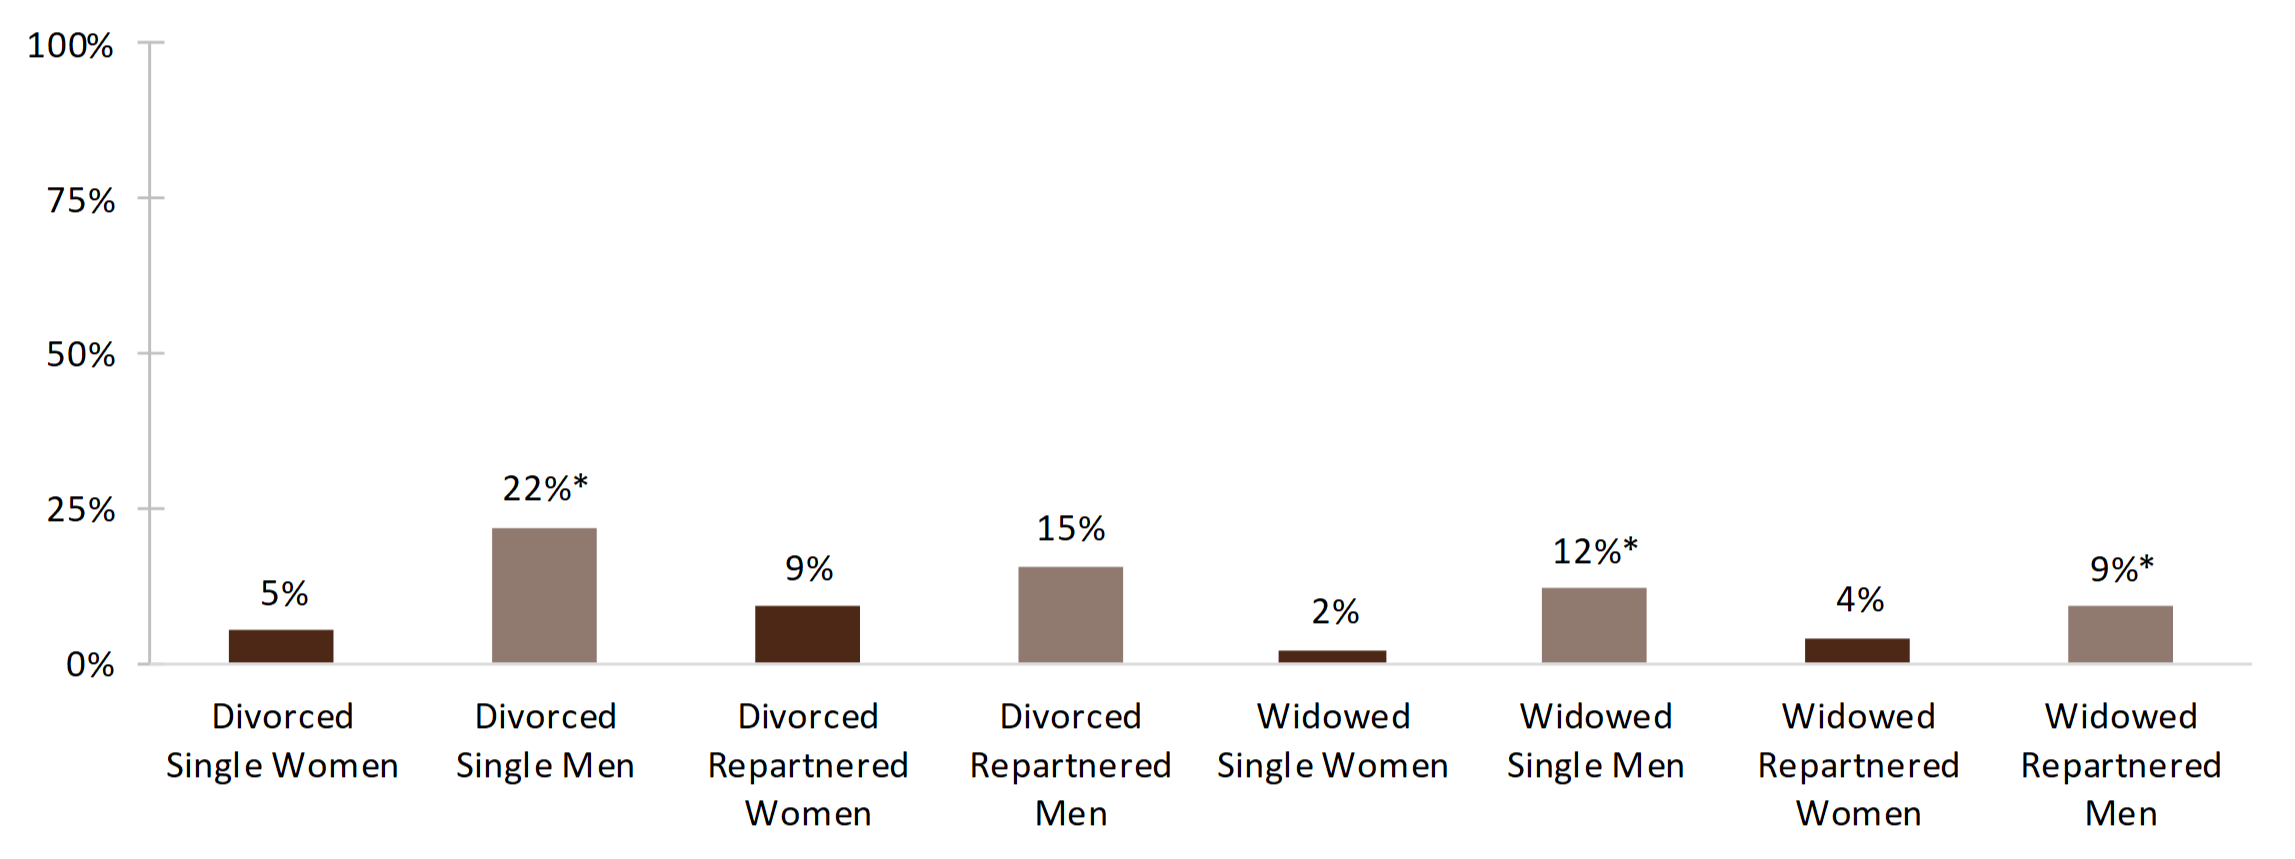 bar chart showing percentages of Figure 4. Alcohol Use for Dissolution and Repartnership by Gender